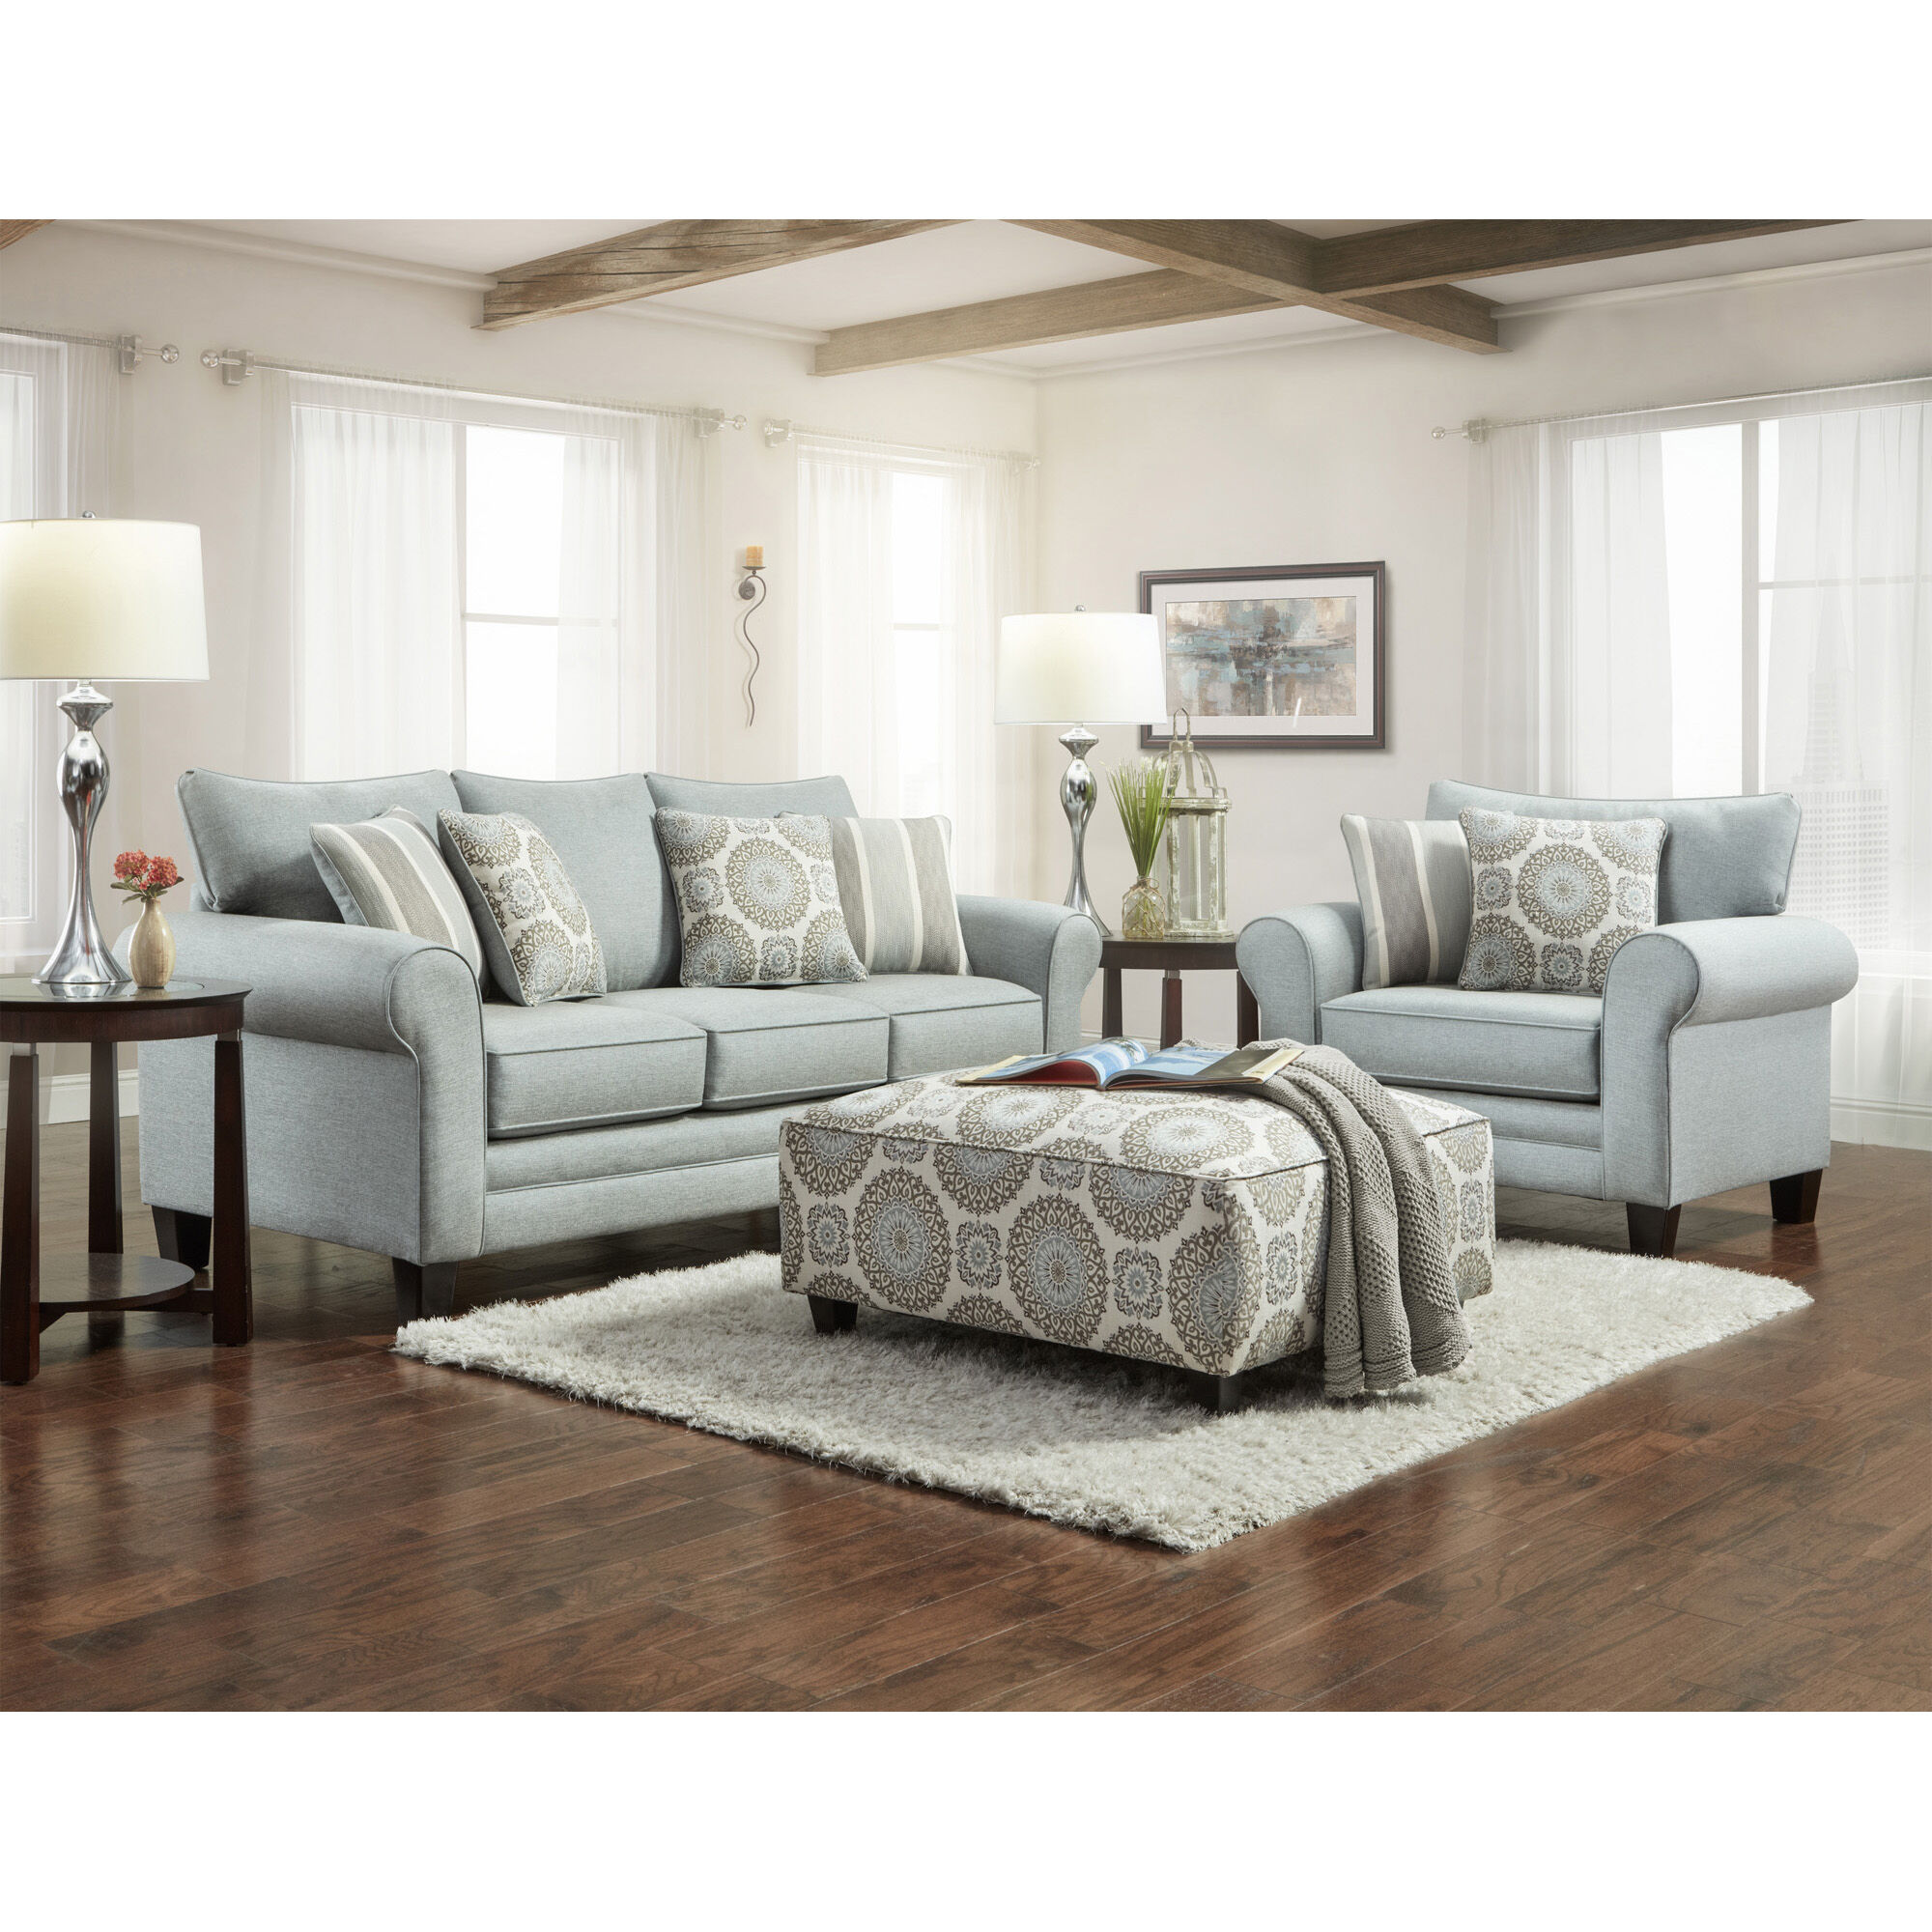 Genial 3 Piece Lara Living Room Collection